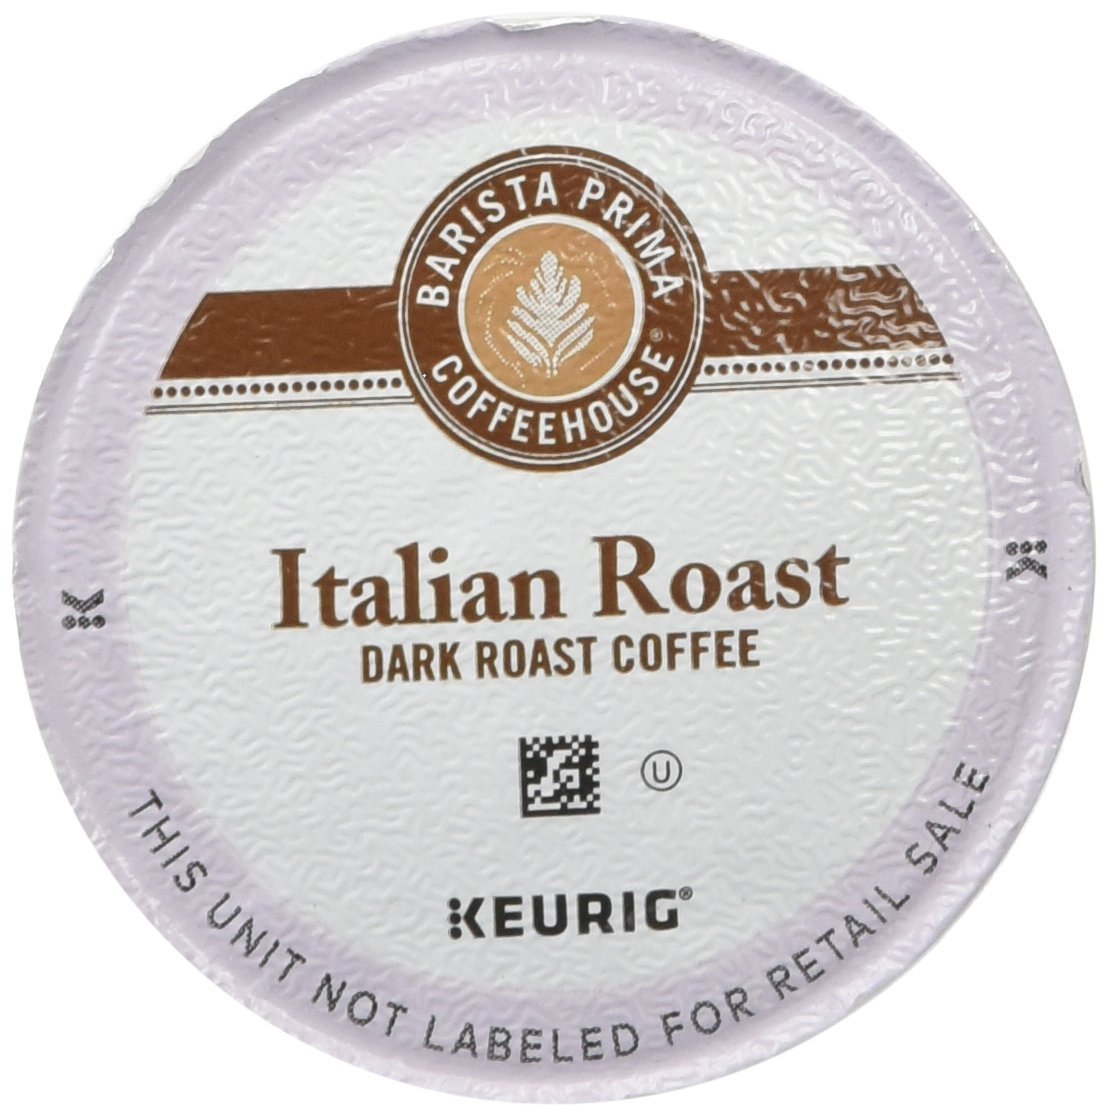 Barista Prima Coffeehouse Italian Roast , Single Serve Coffee K-Cups, 48-Count For Brewers by Barista Prima House (Image #1)